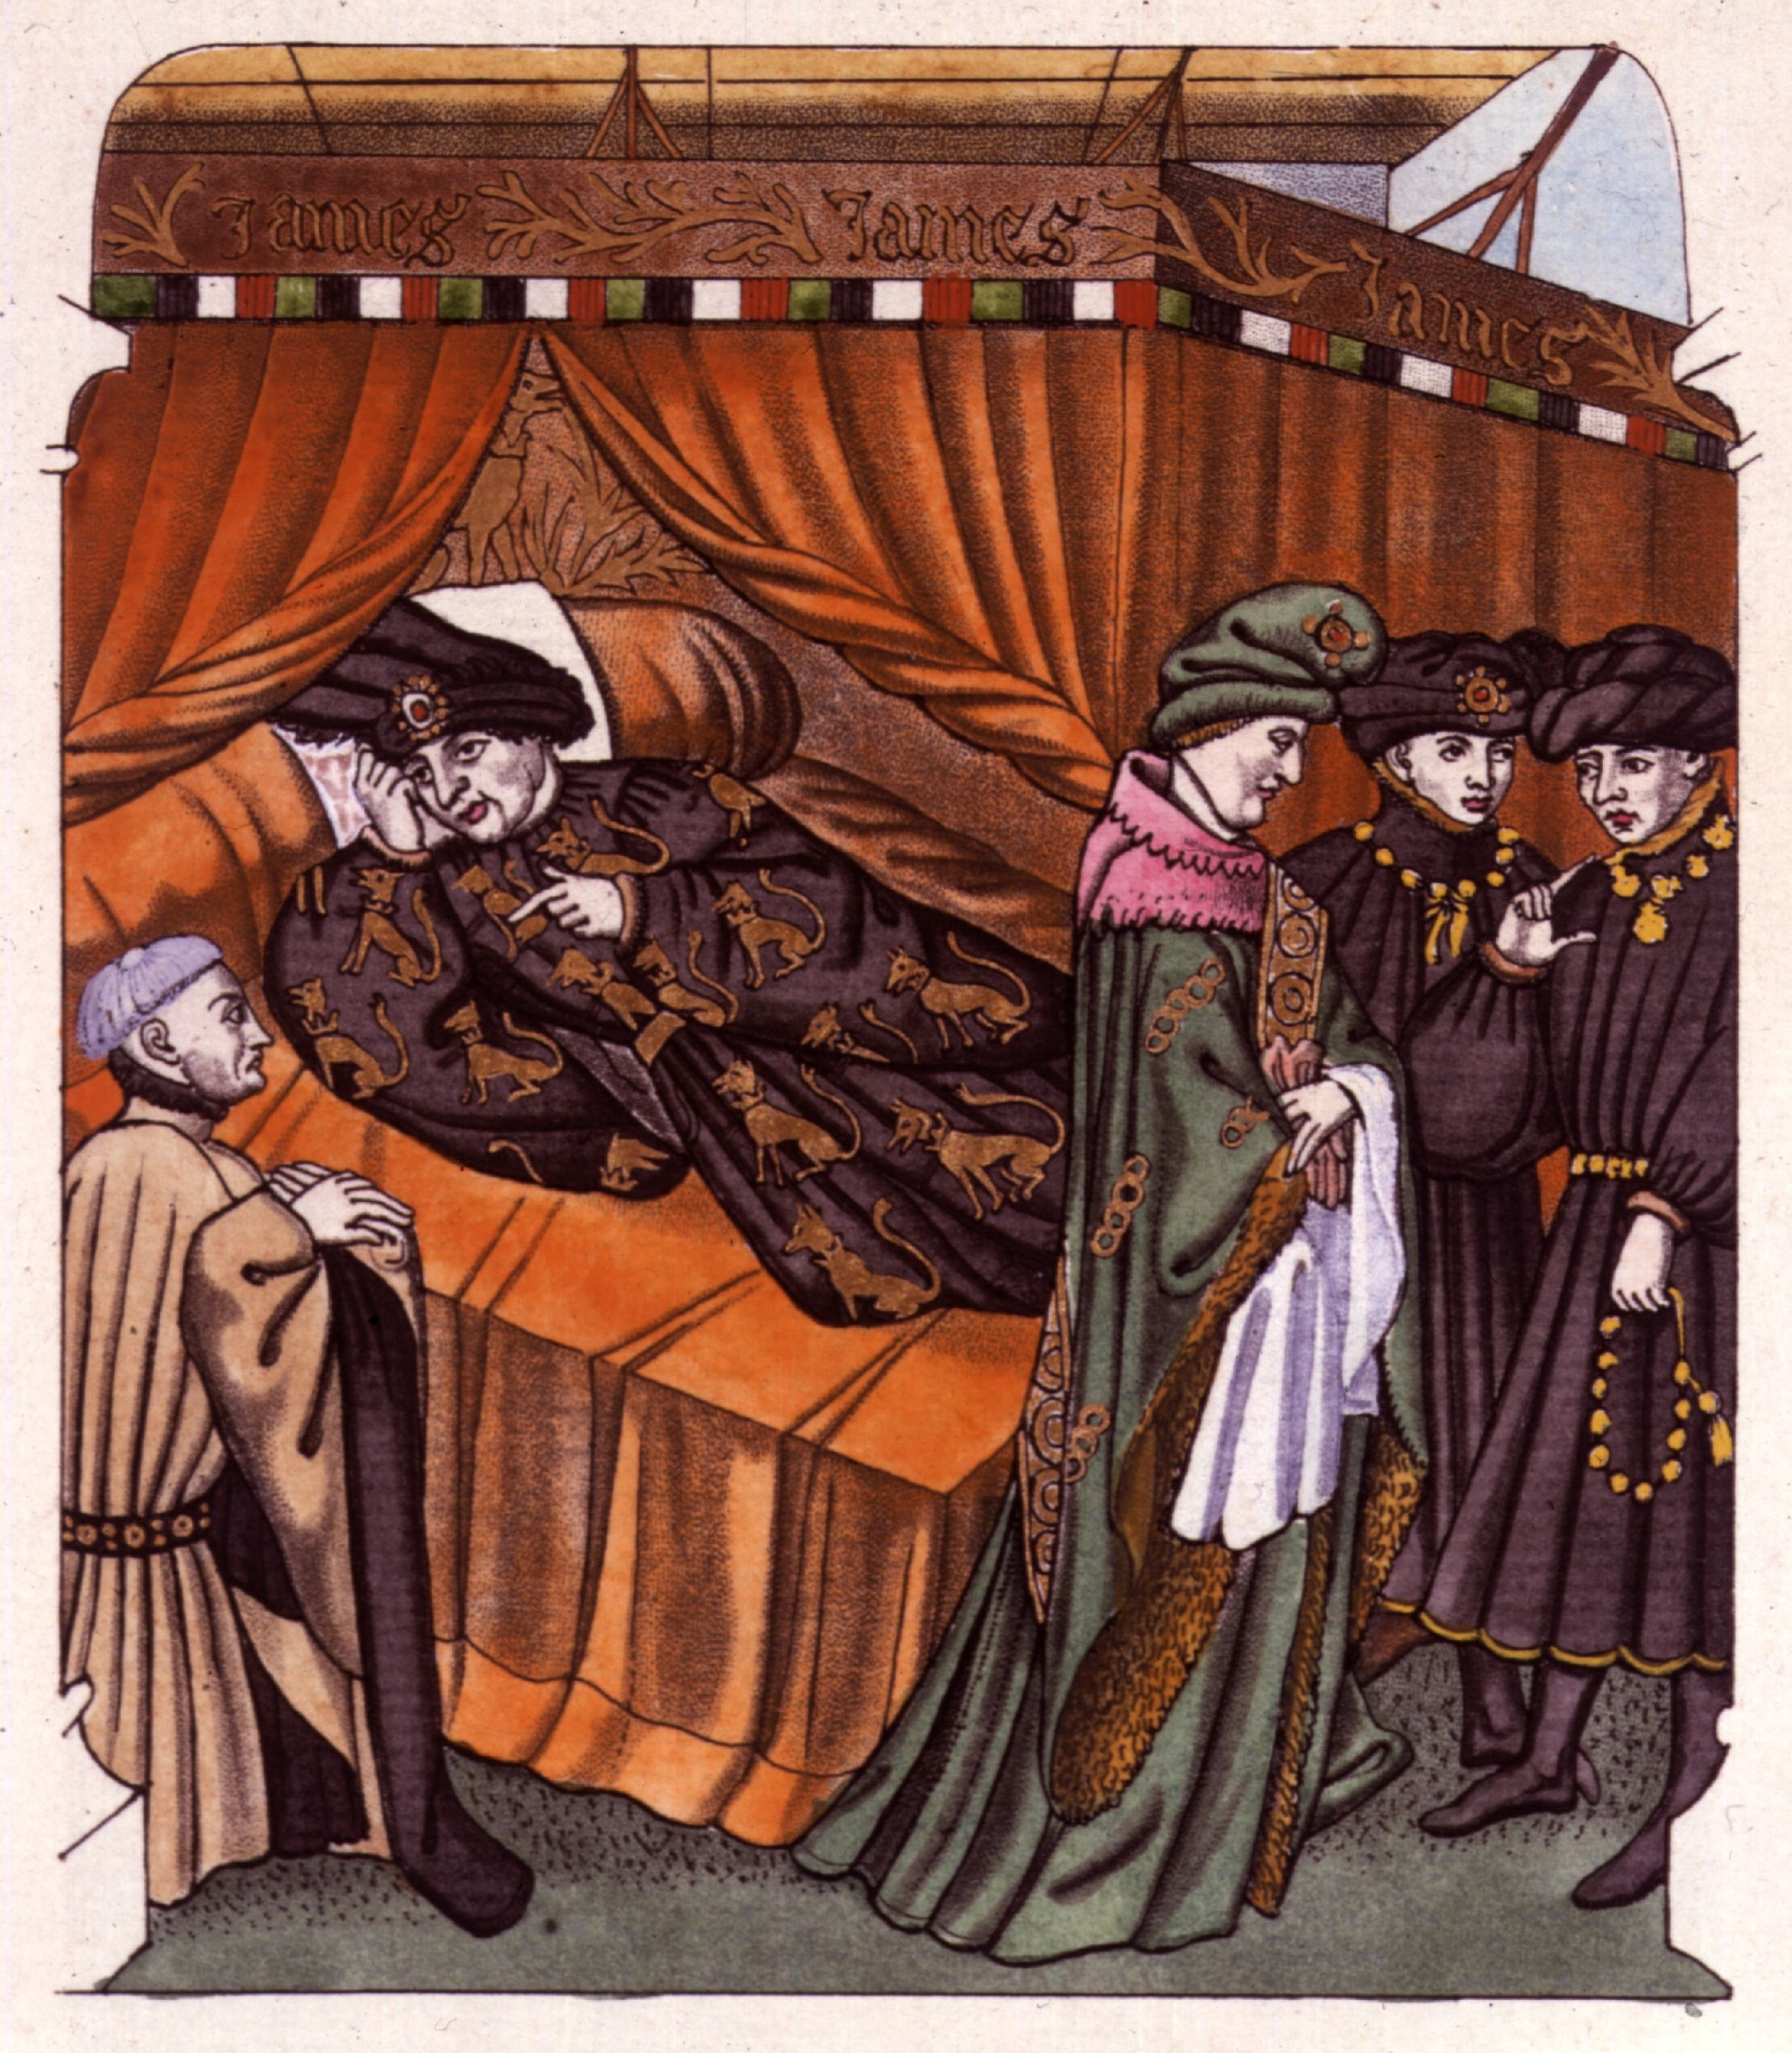 Charles20VI2C20King20of20France2C20is20attended20in20his20bedchamber20by20servants20and20ministers.20-d706215